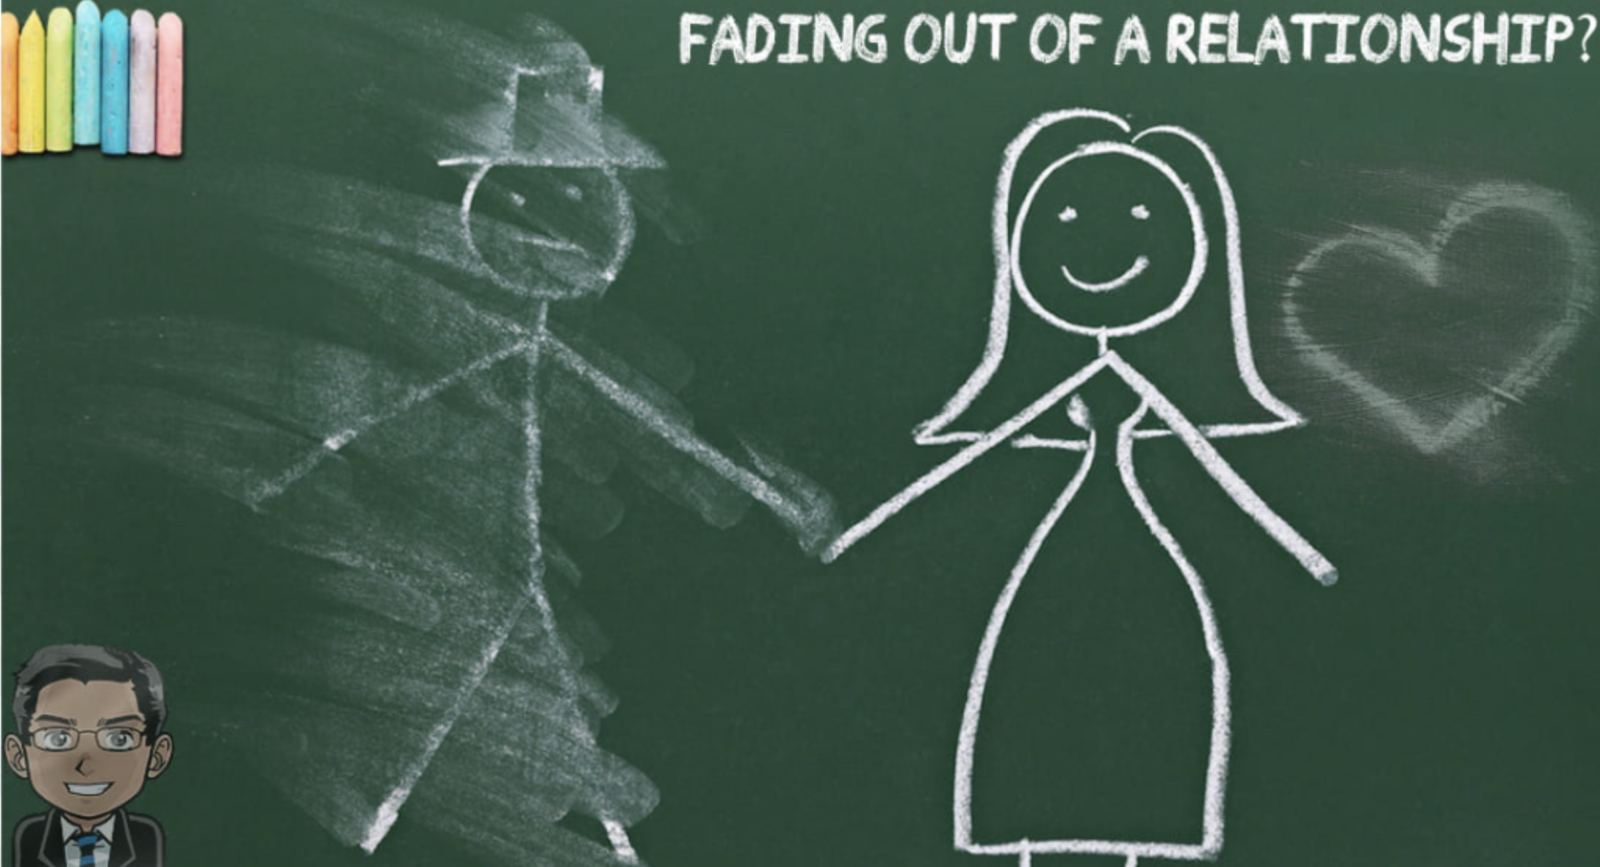 When is it okay to fade out of a relationship?